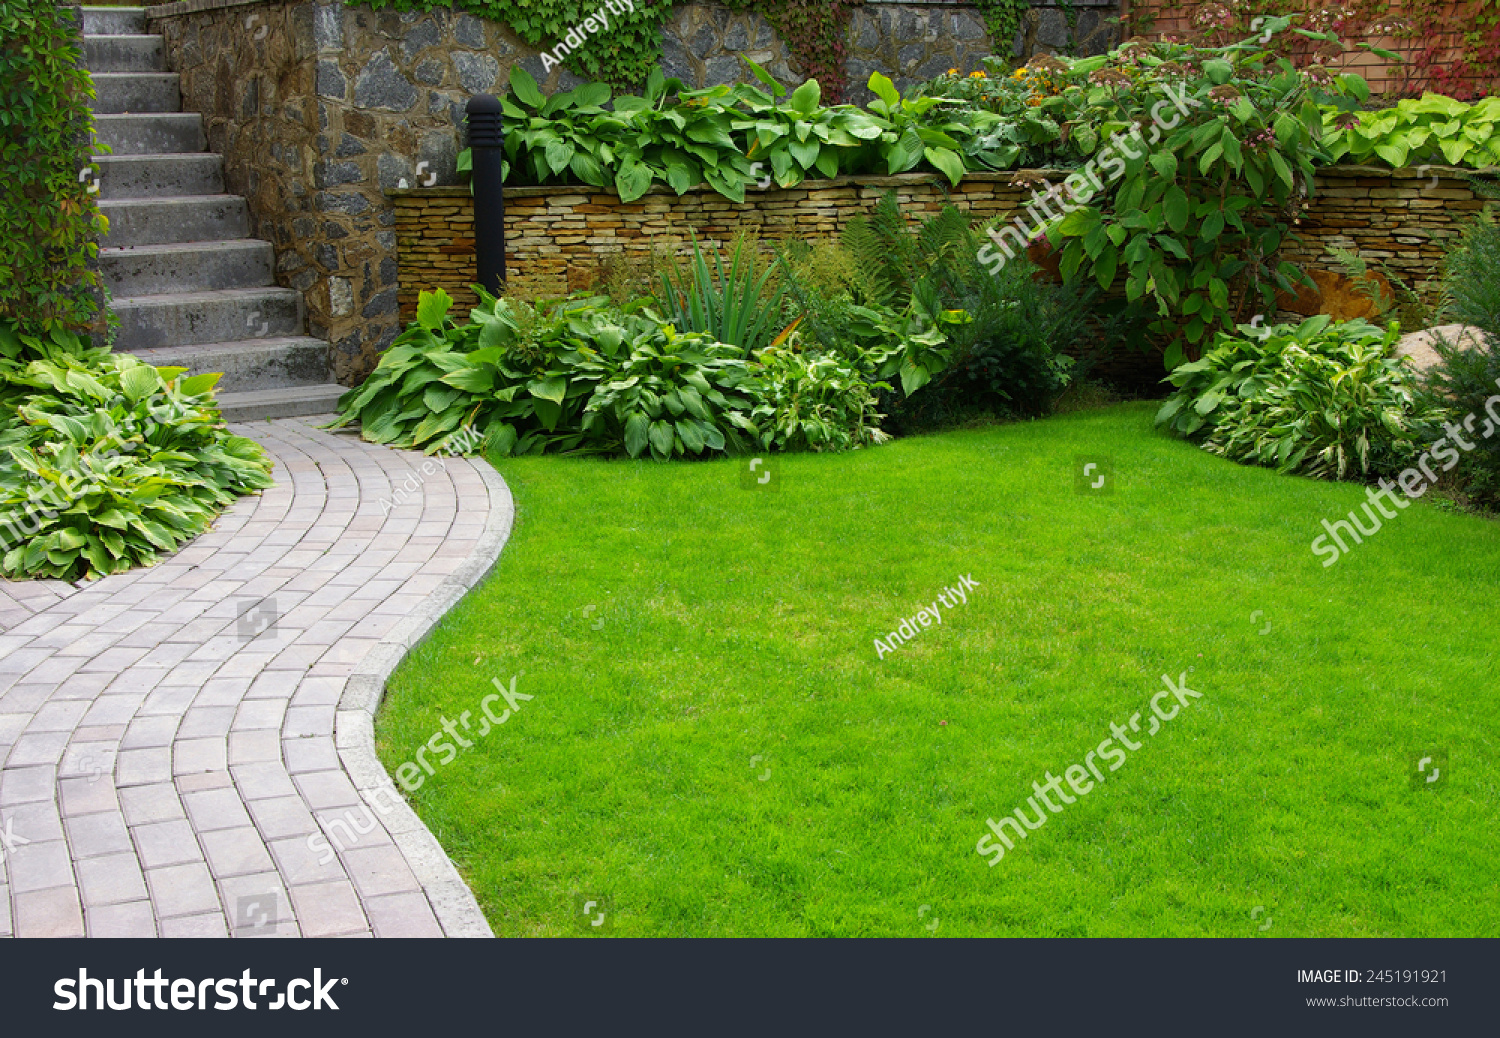 how to kill grass between stones